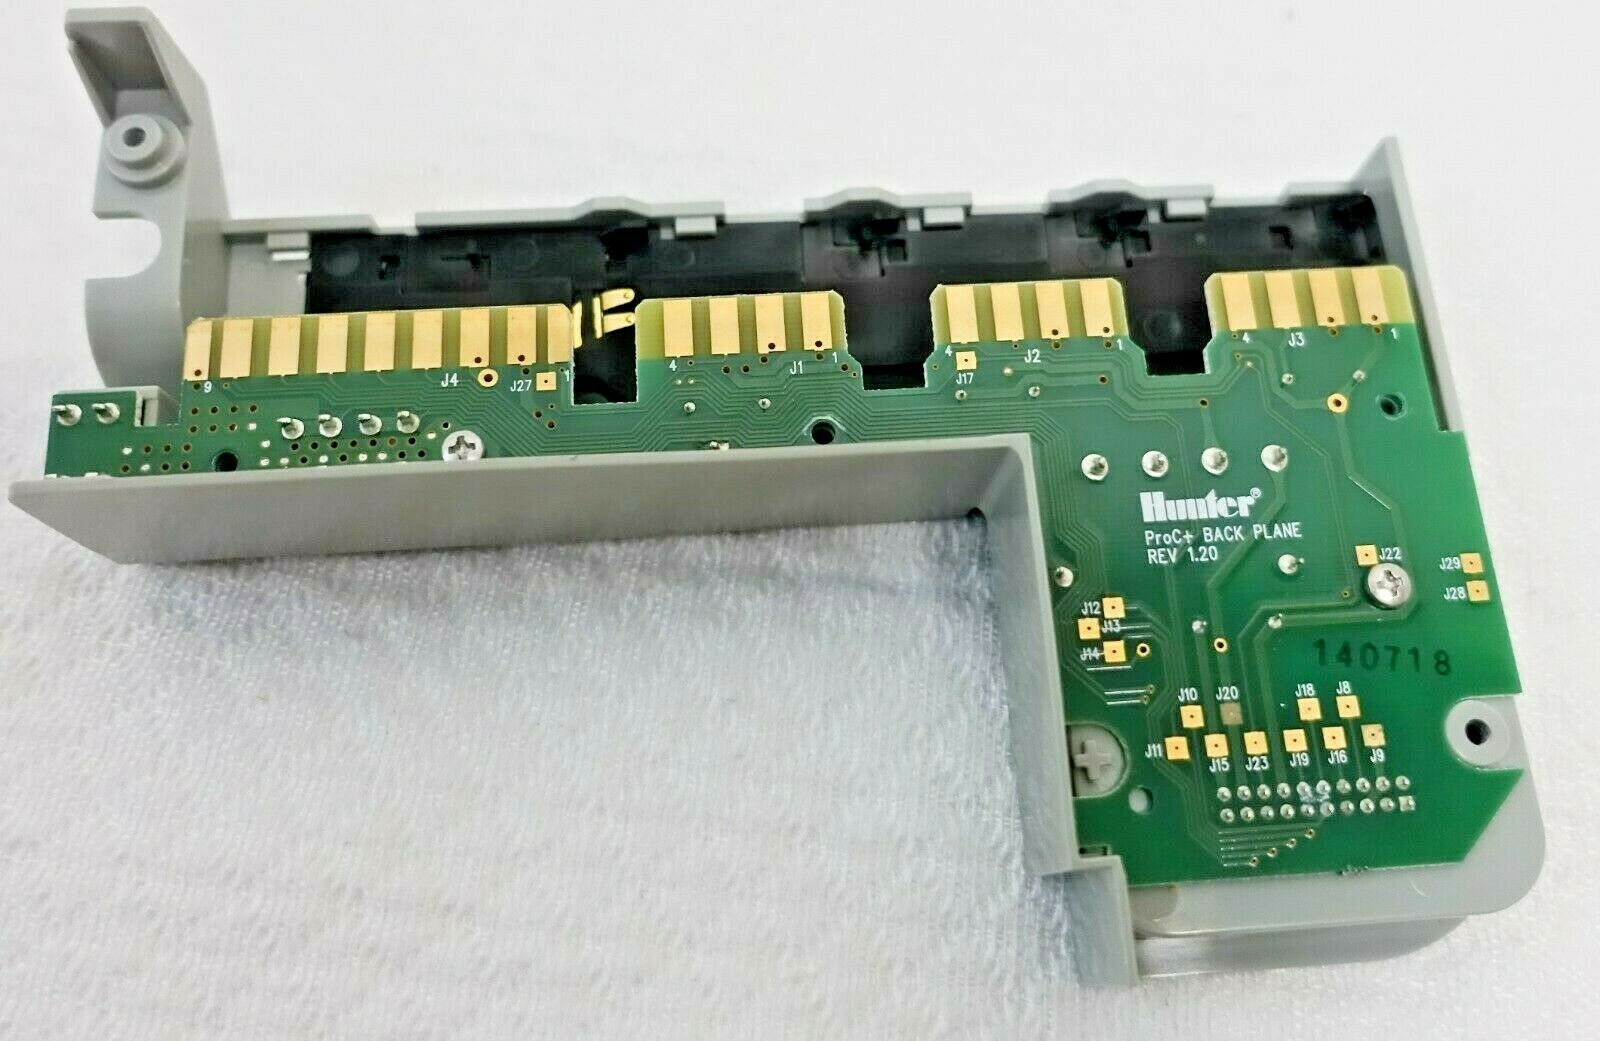 HUNTER PRO-C+ PC-400 Back Plane Circuit Board Assembly with Plastic Shell PCB